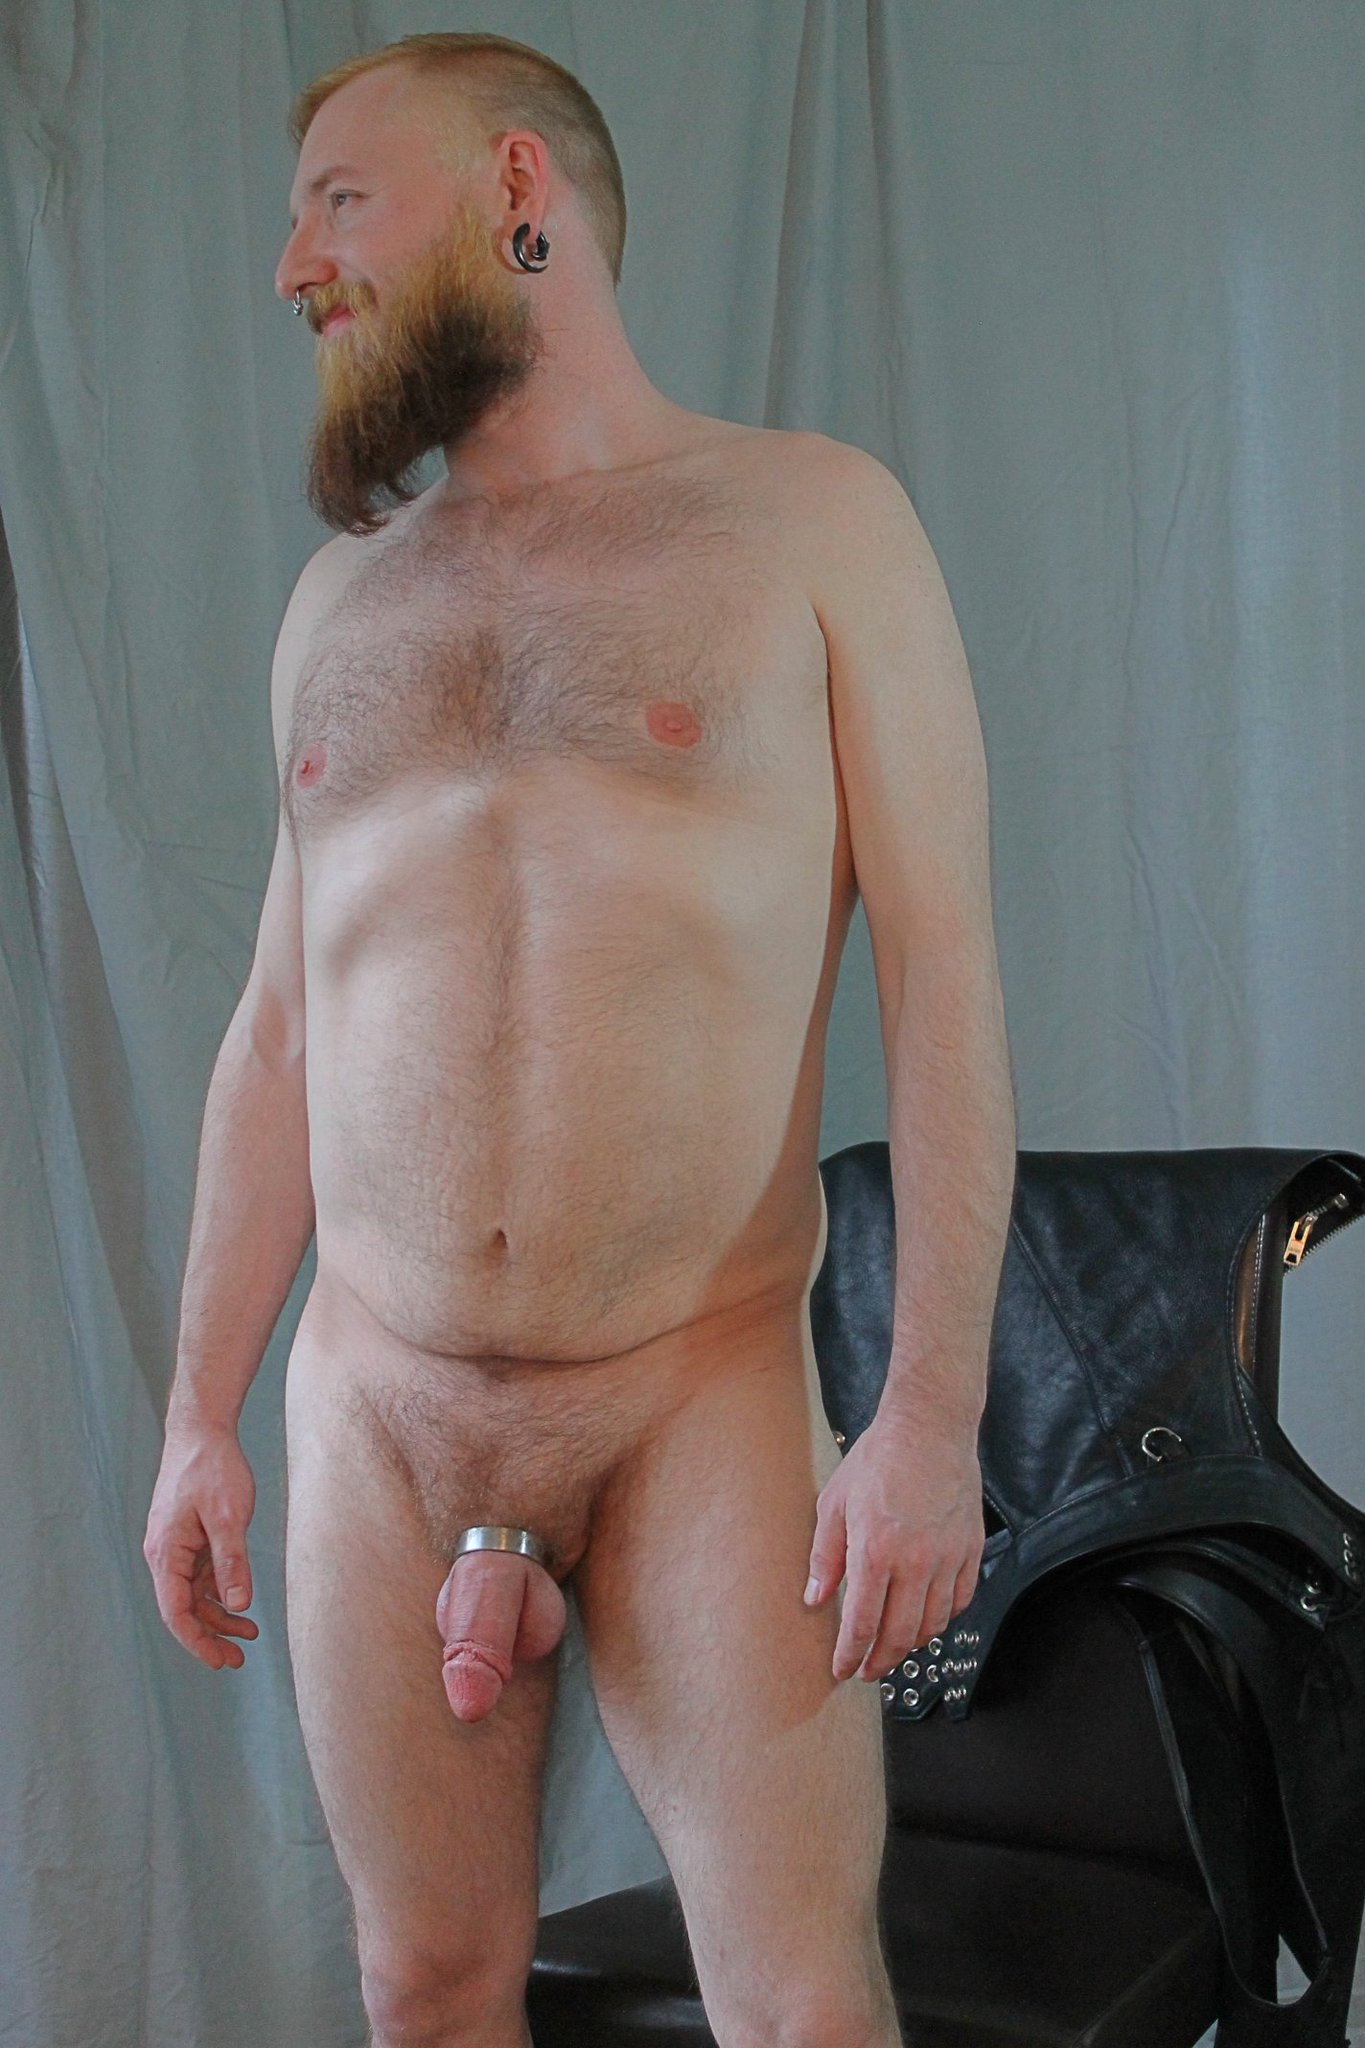 Happy national post a nude day! #ginger #gayotter #nude #bbbh https://t.co/qiR5aBNwZp